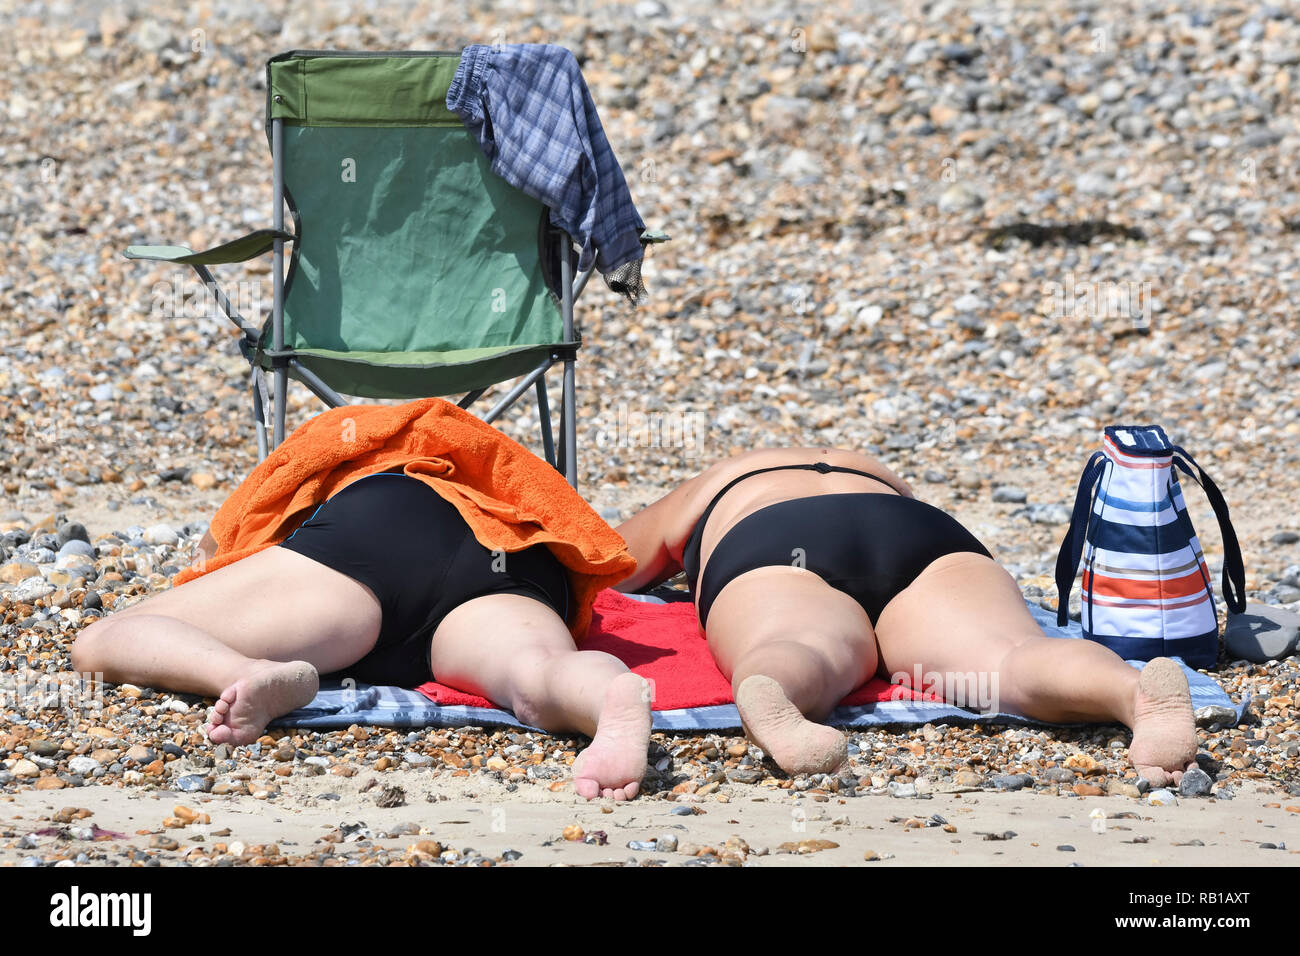 A couple of people laying face down on beach towels in swimwear on a beach, getting a sun tan on a hot day in the UK. - Stock Image